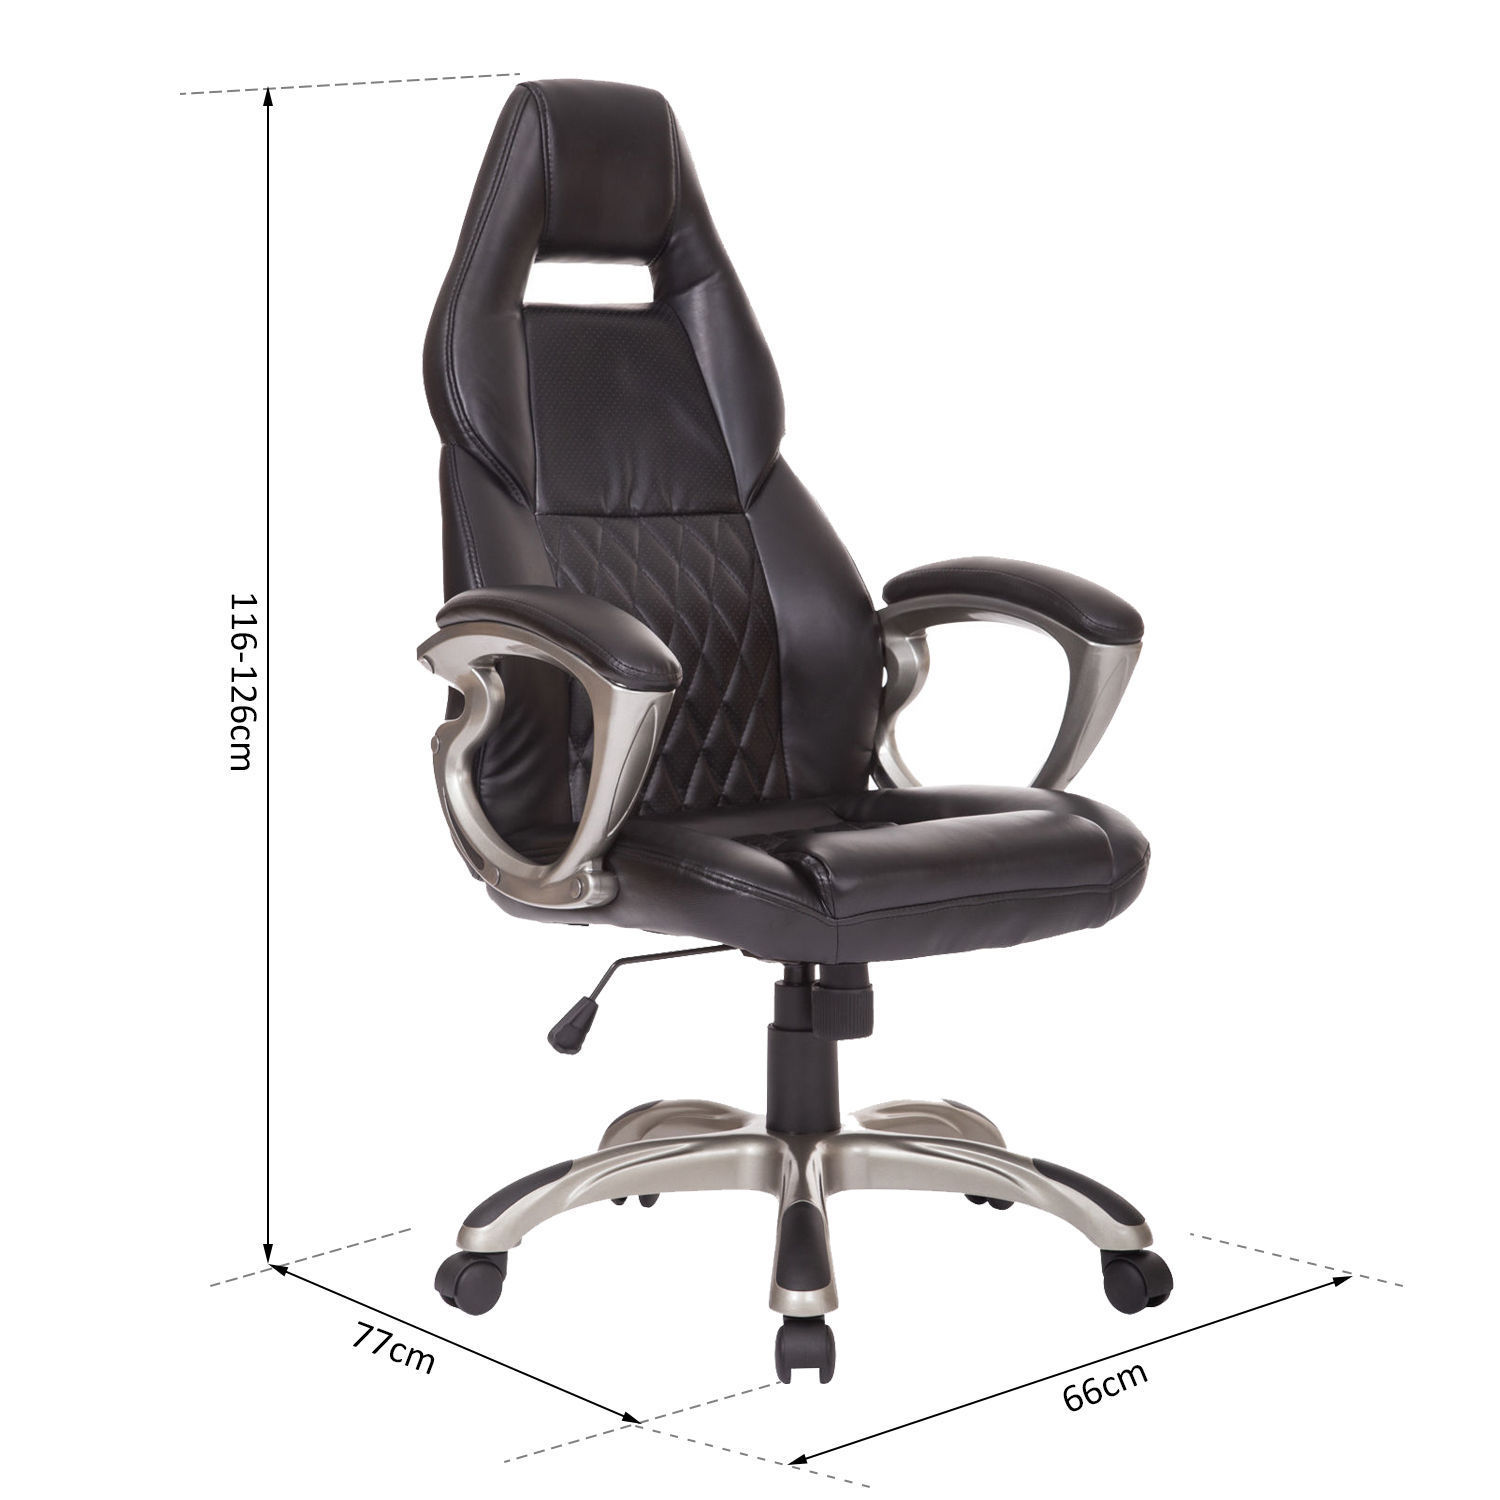 Racing Gaming Sports Chair Computer PC chairs Height ...